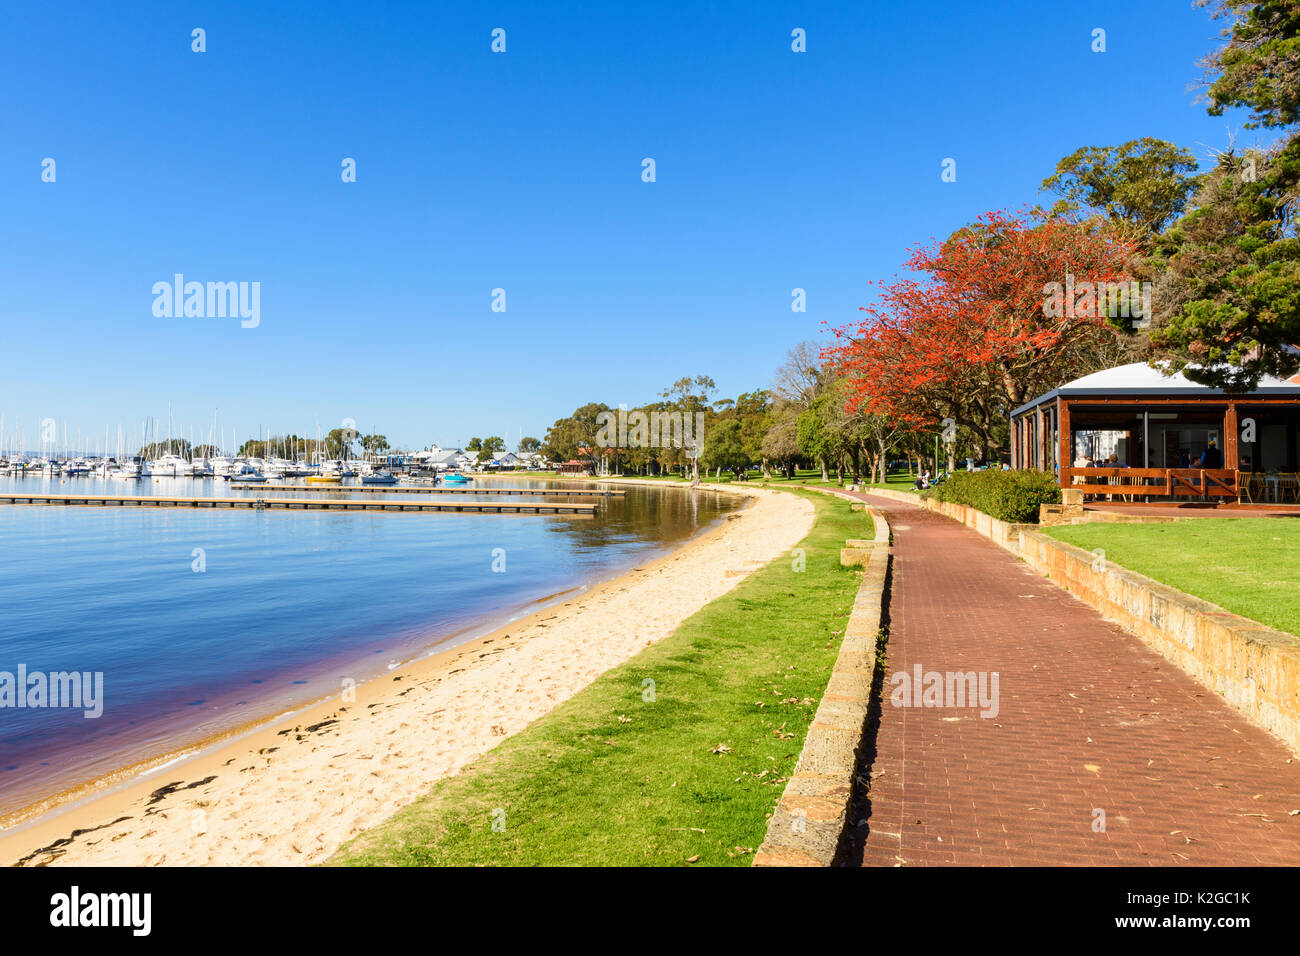 Riverside path and beach along the Matilda Bay Reserve on the Swan River at Crawley, Perth, Western Australia - Stock Image